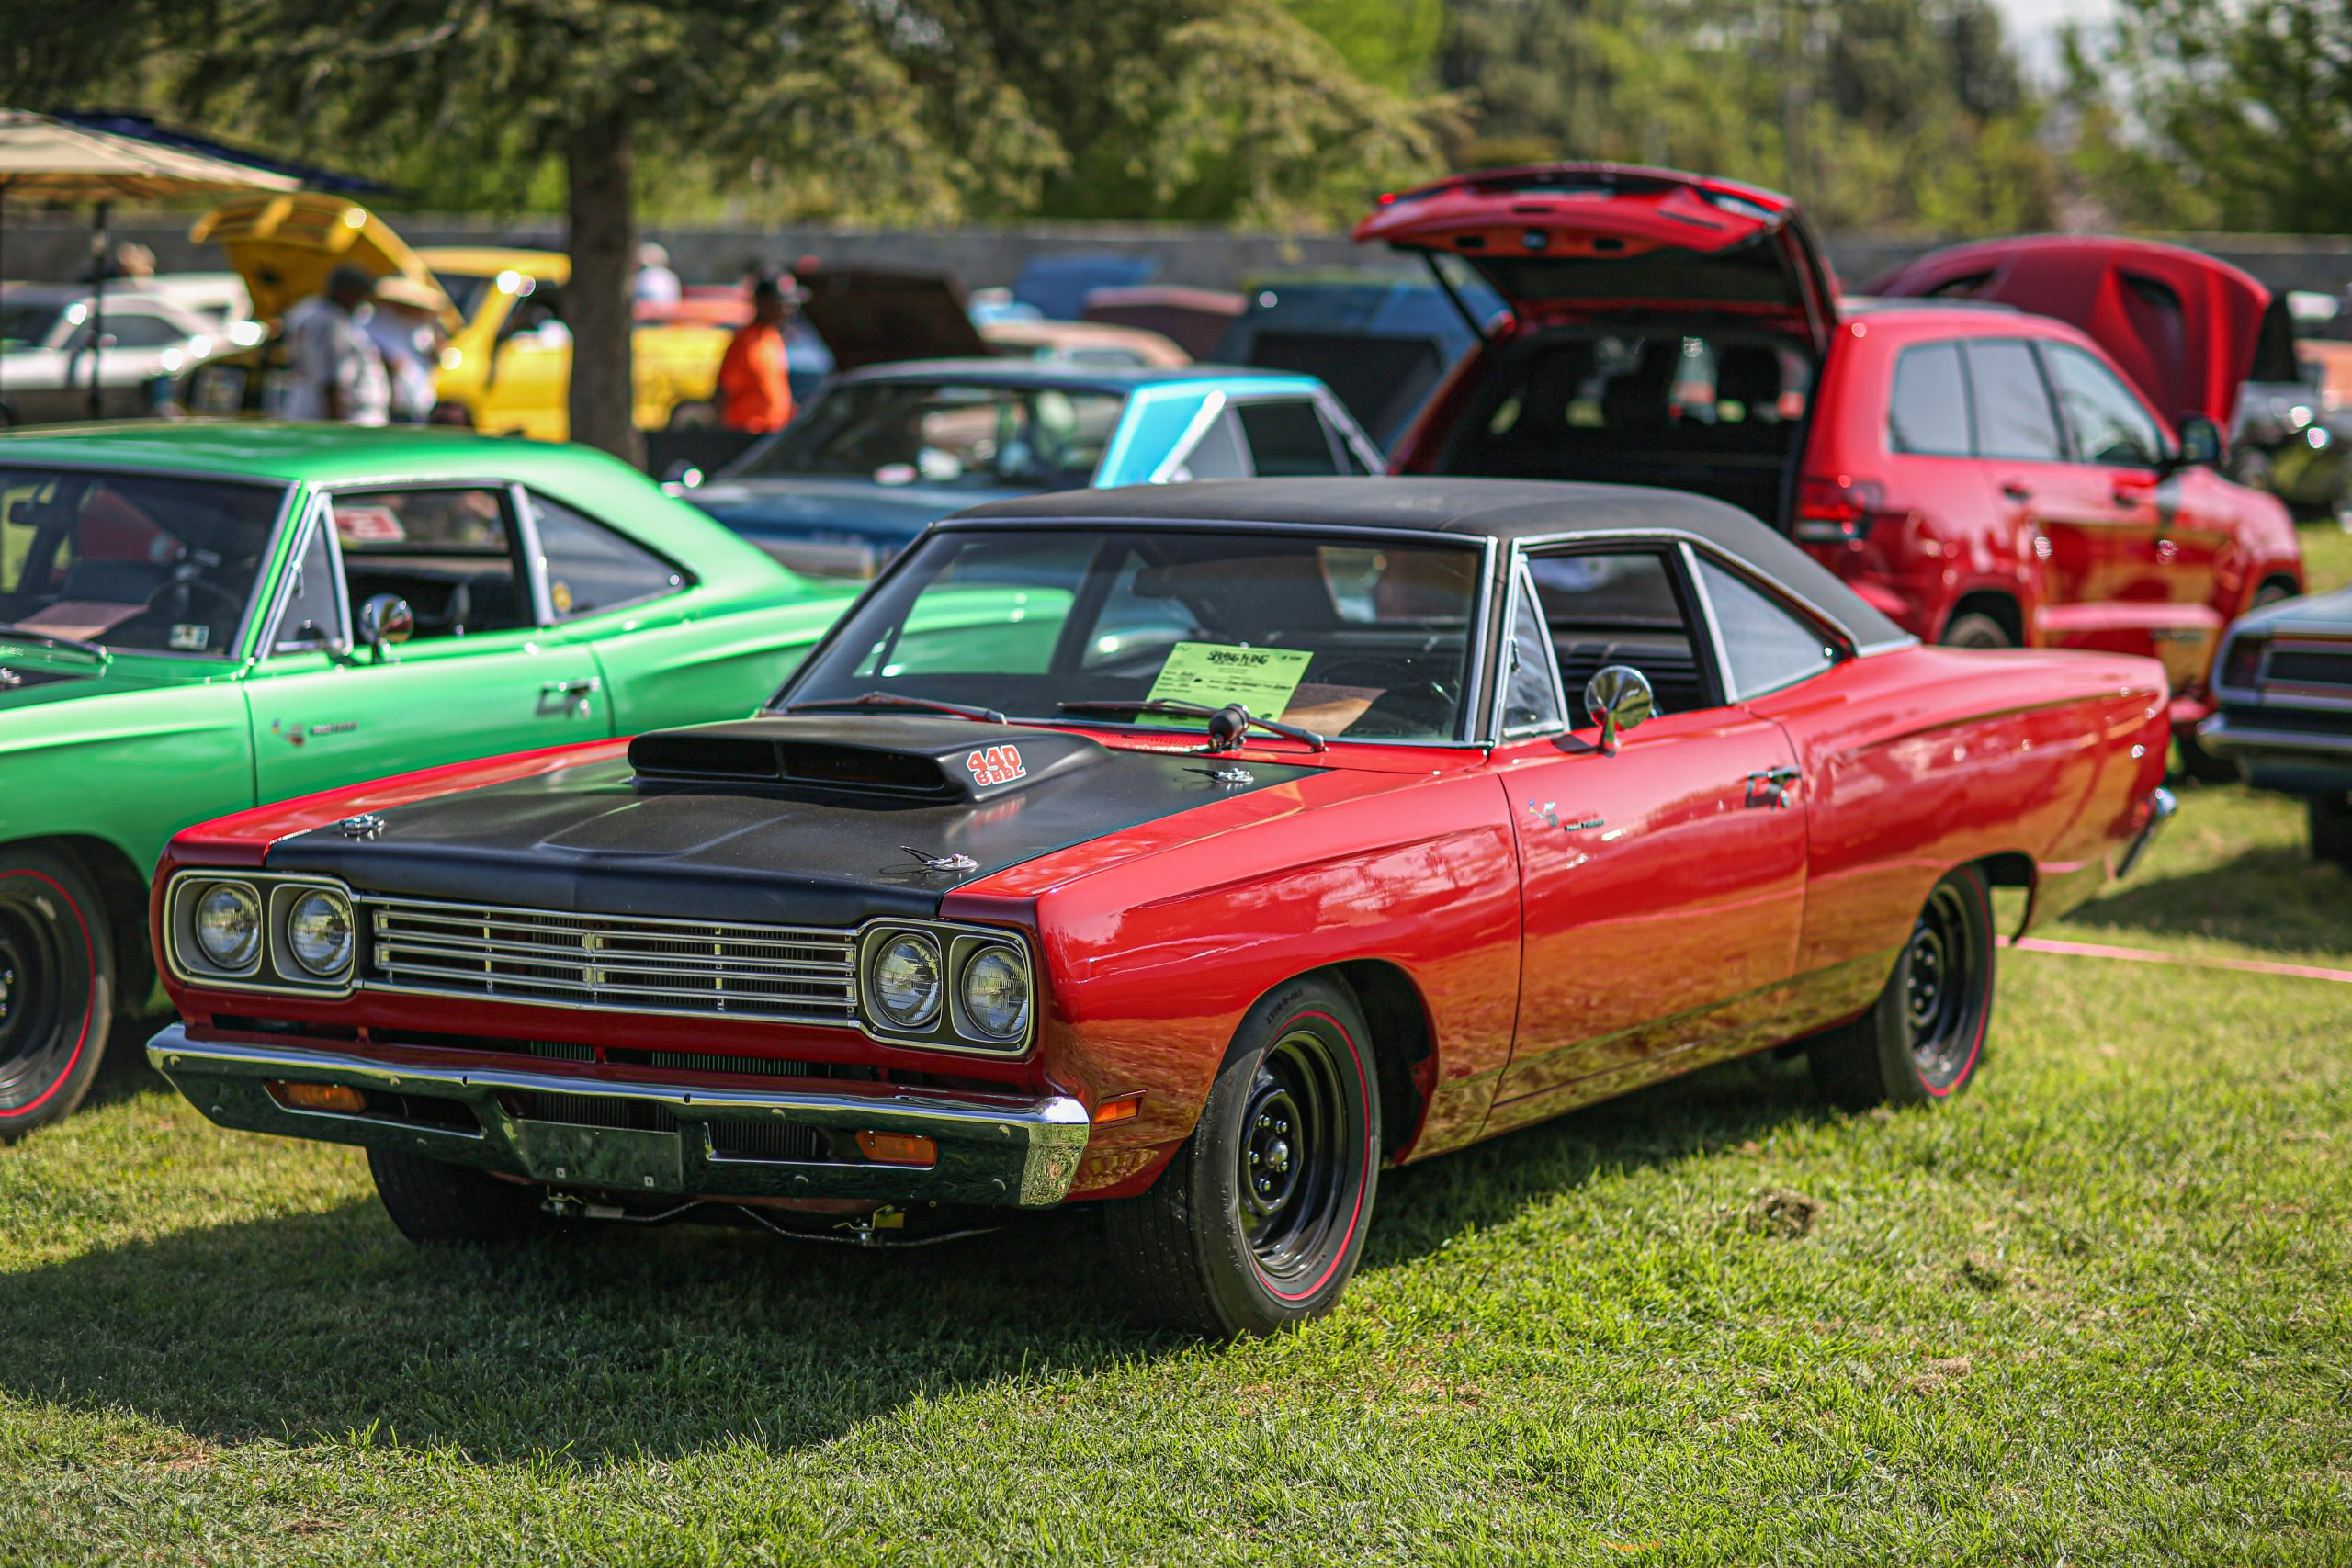 1969 Road Runner 440 Six-barrel